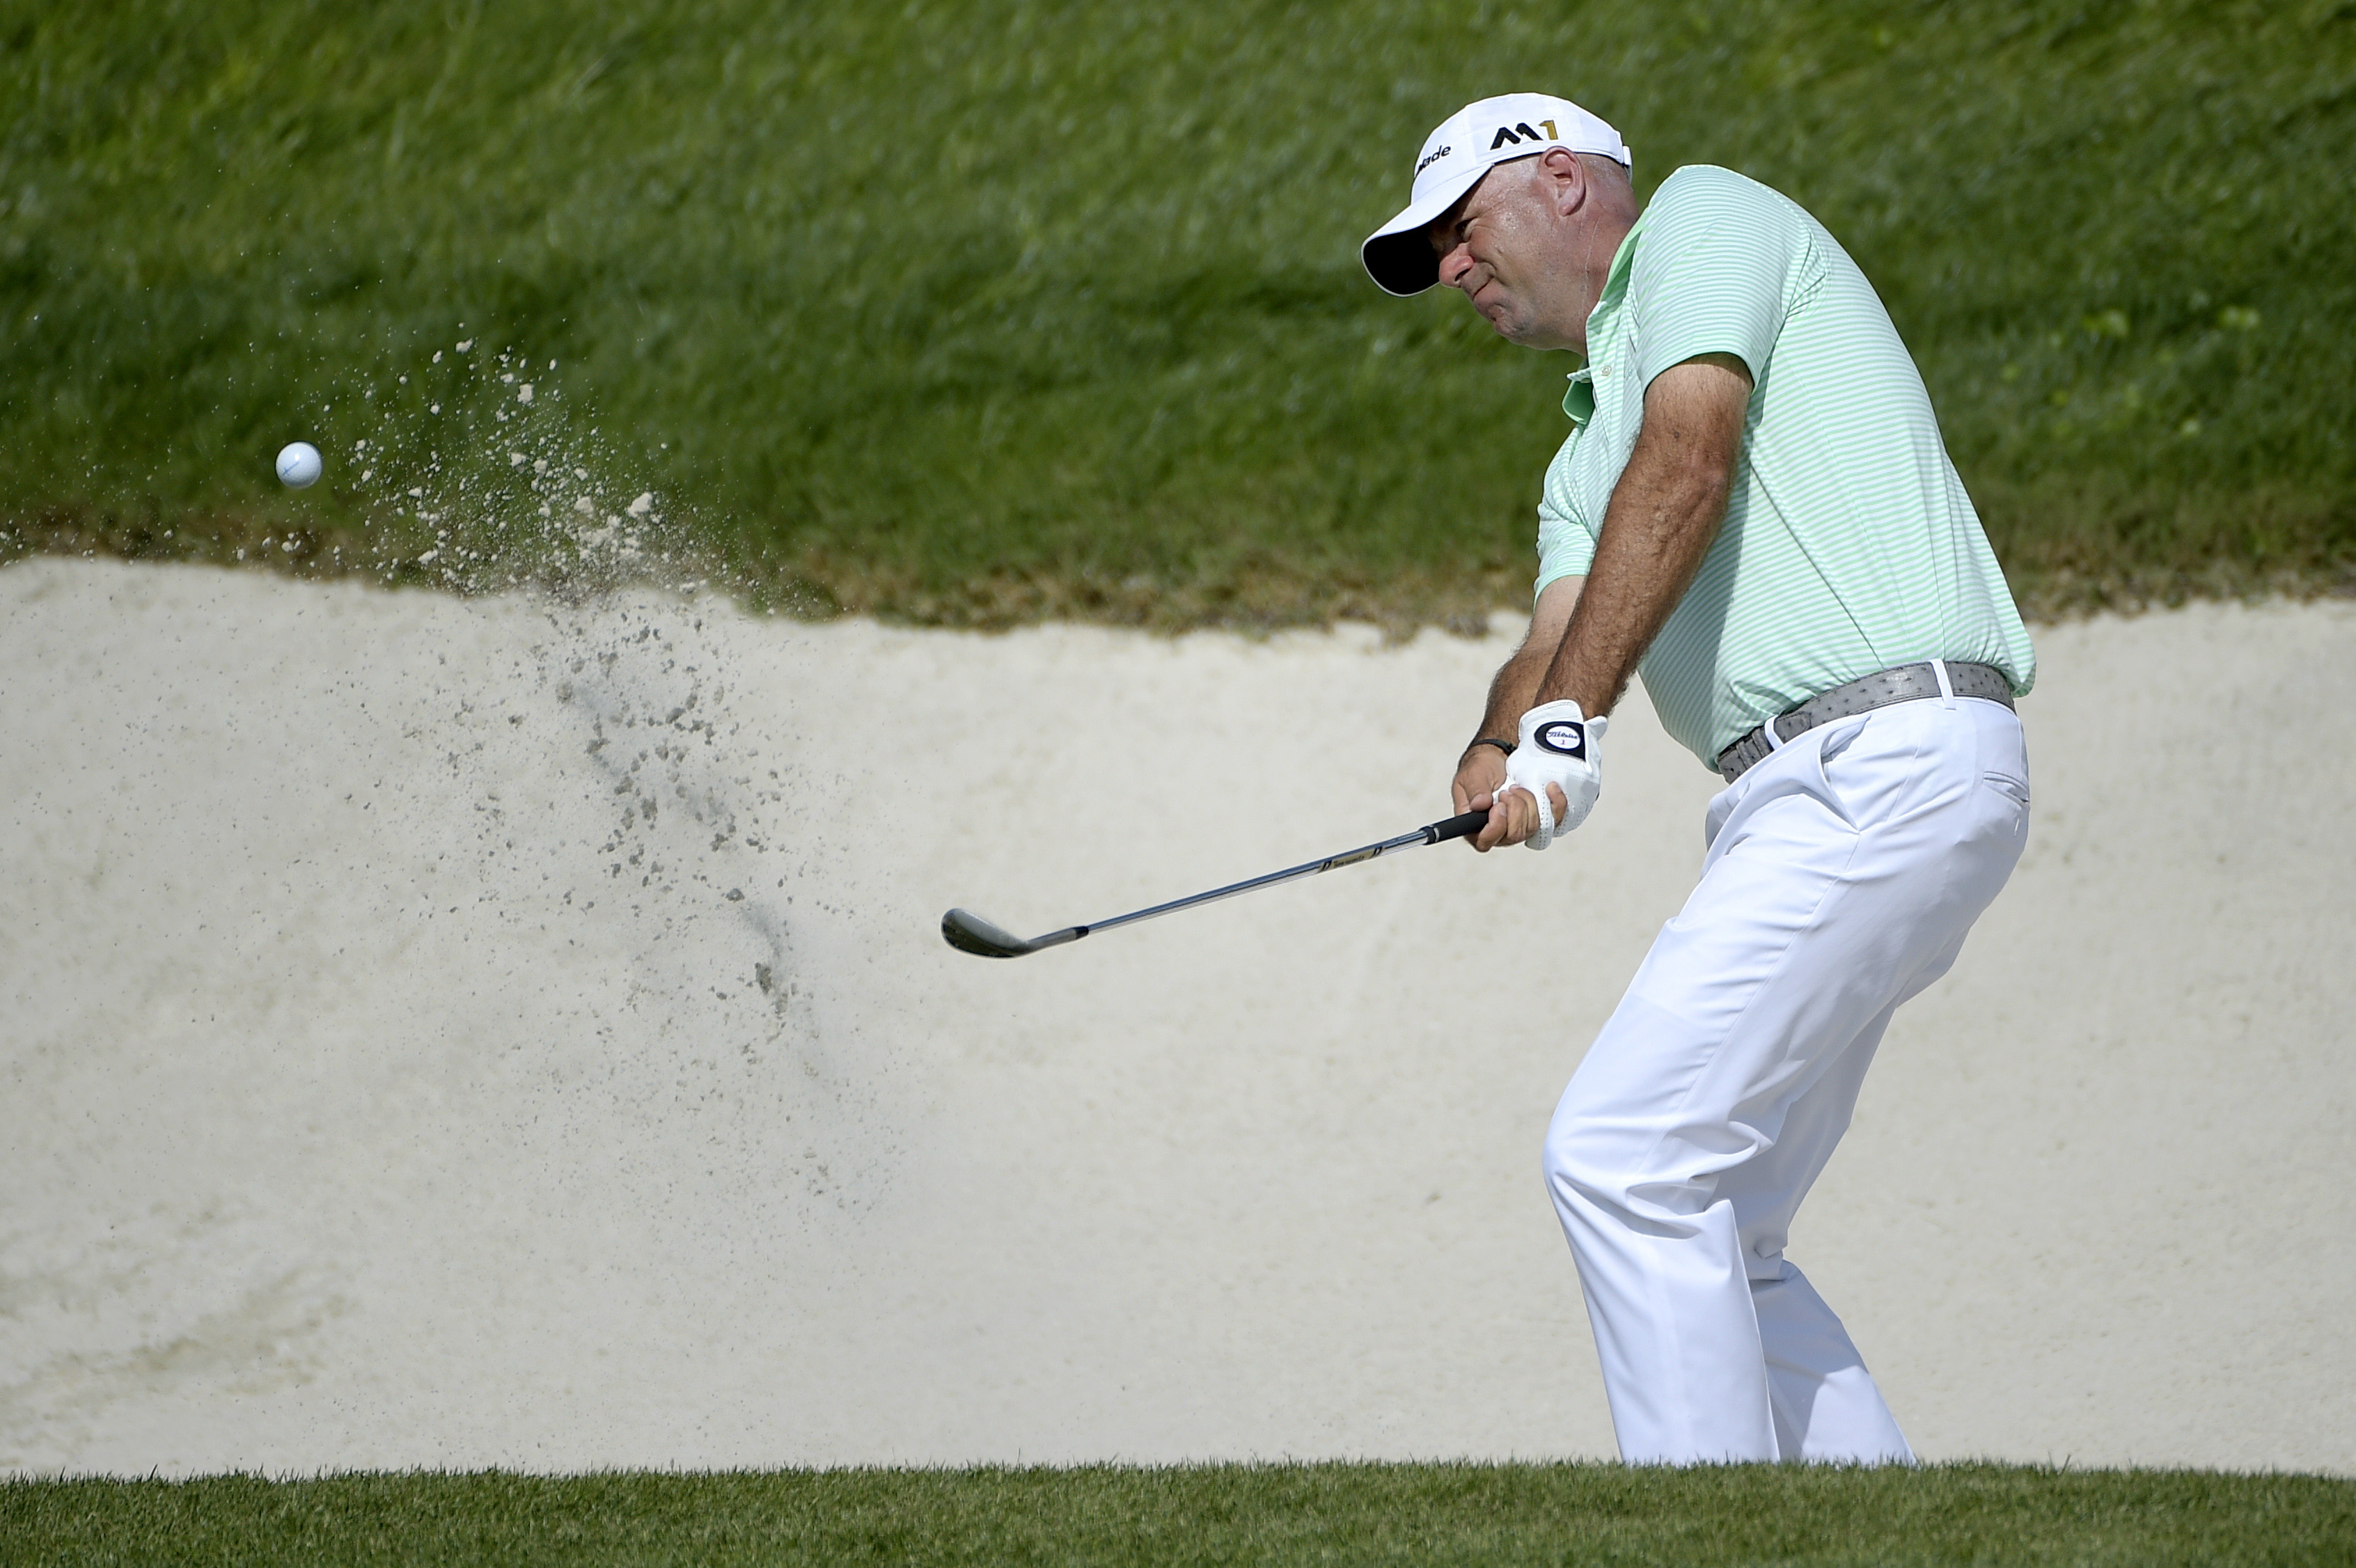 Stewart Cink hits out of a bunker onto the 18th green during the first round of the Arnold Palmer Invitational golf tournament in Orlando, Fla., Thursday, March 17, 2016. (AP Photo/Phelan M. Ebenhack)